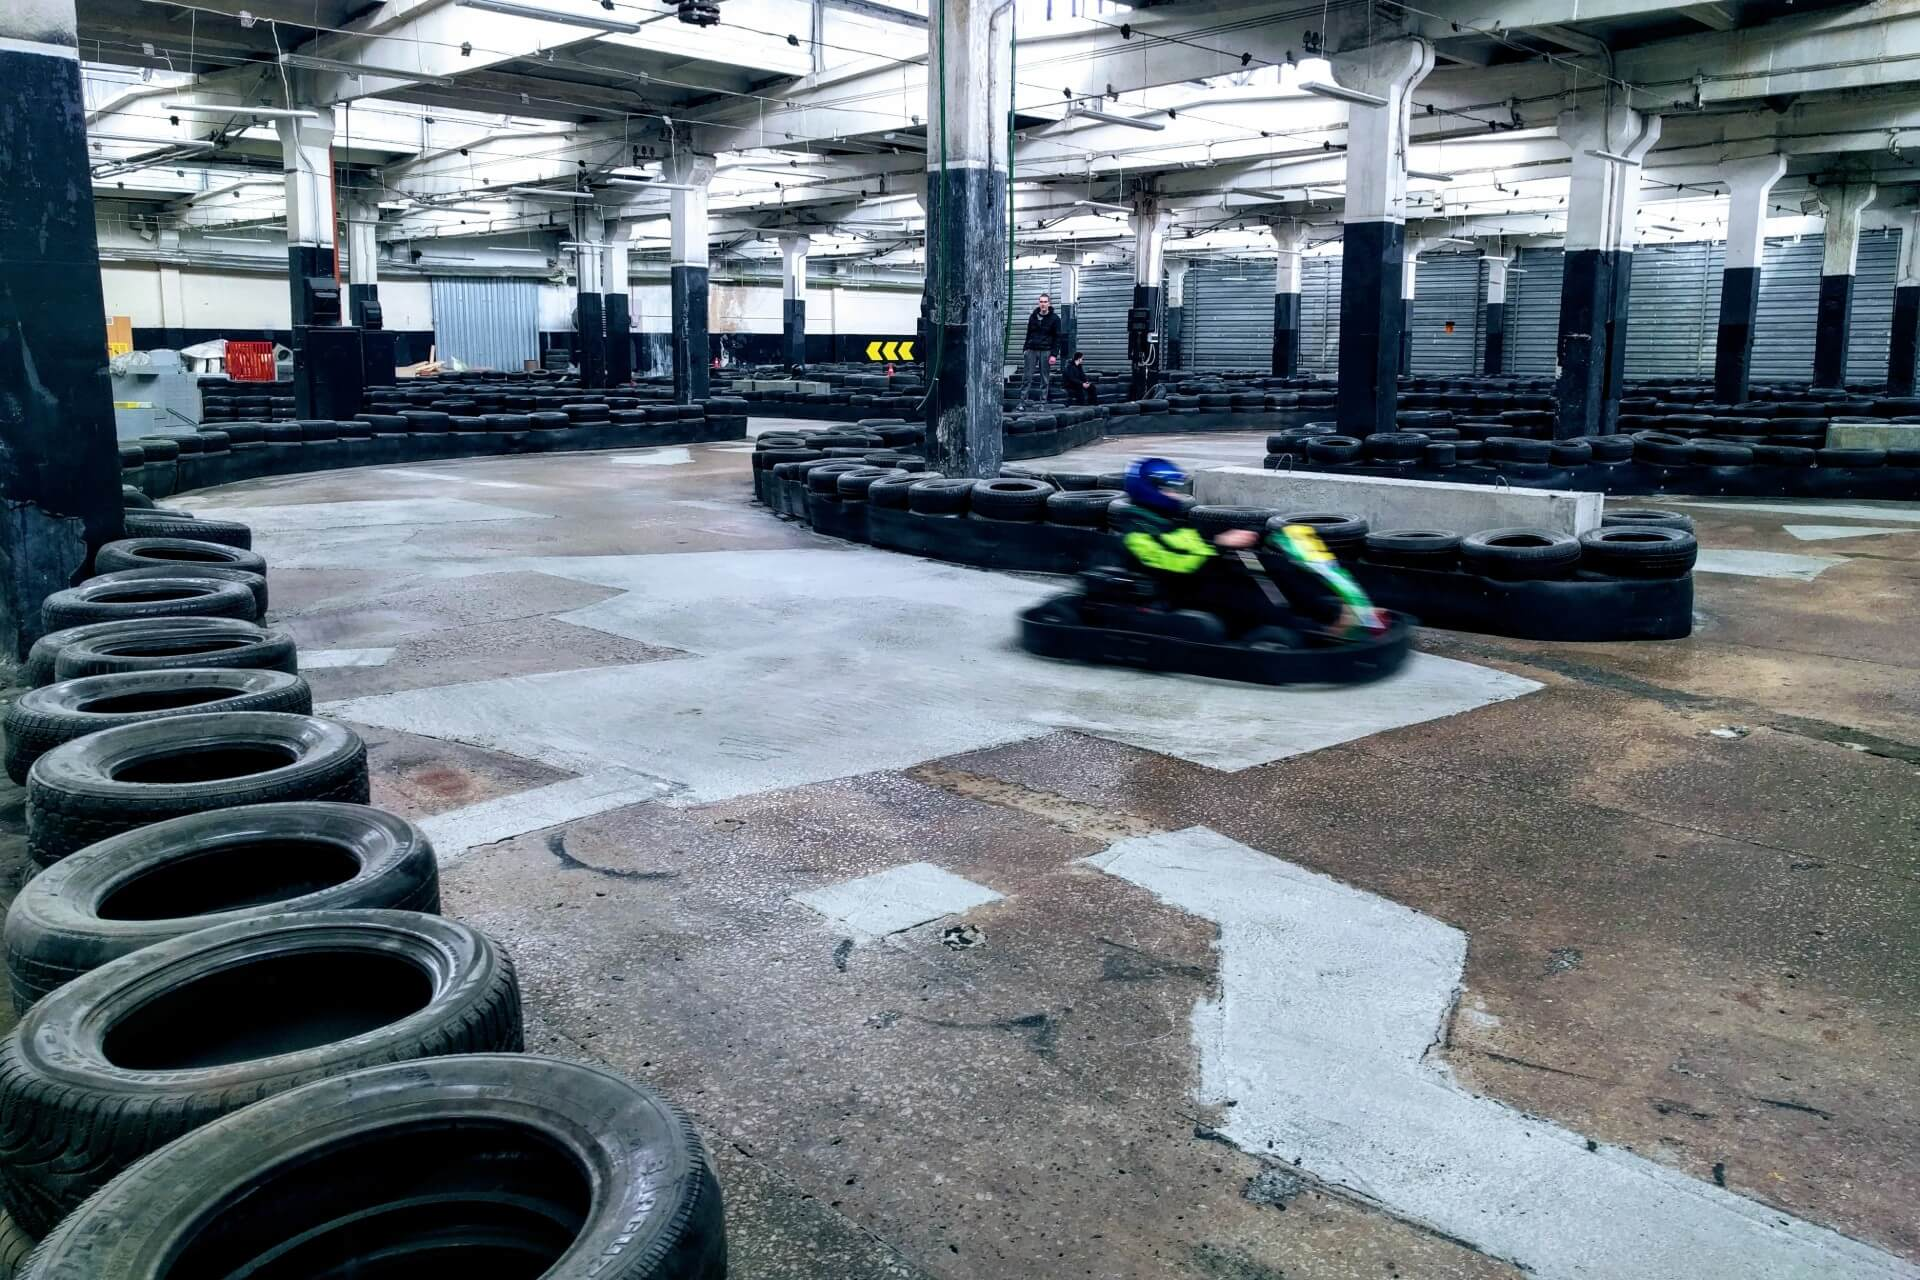 A person on a go-kart rounds a corner - tips for tour operators and activity centres.